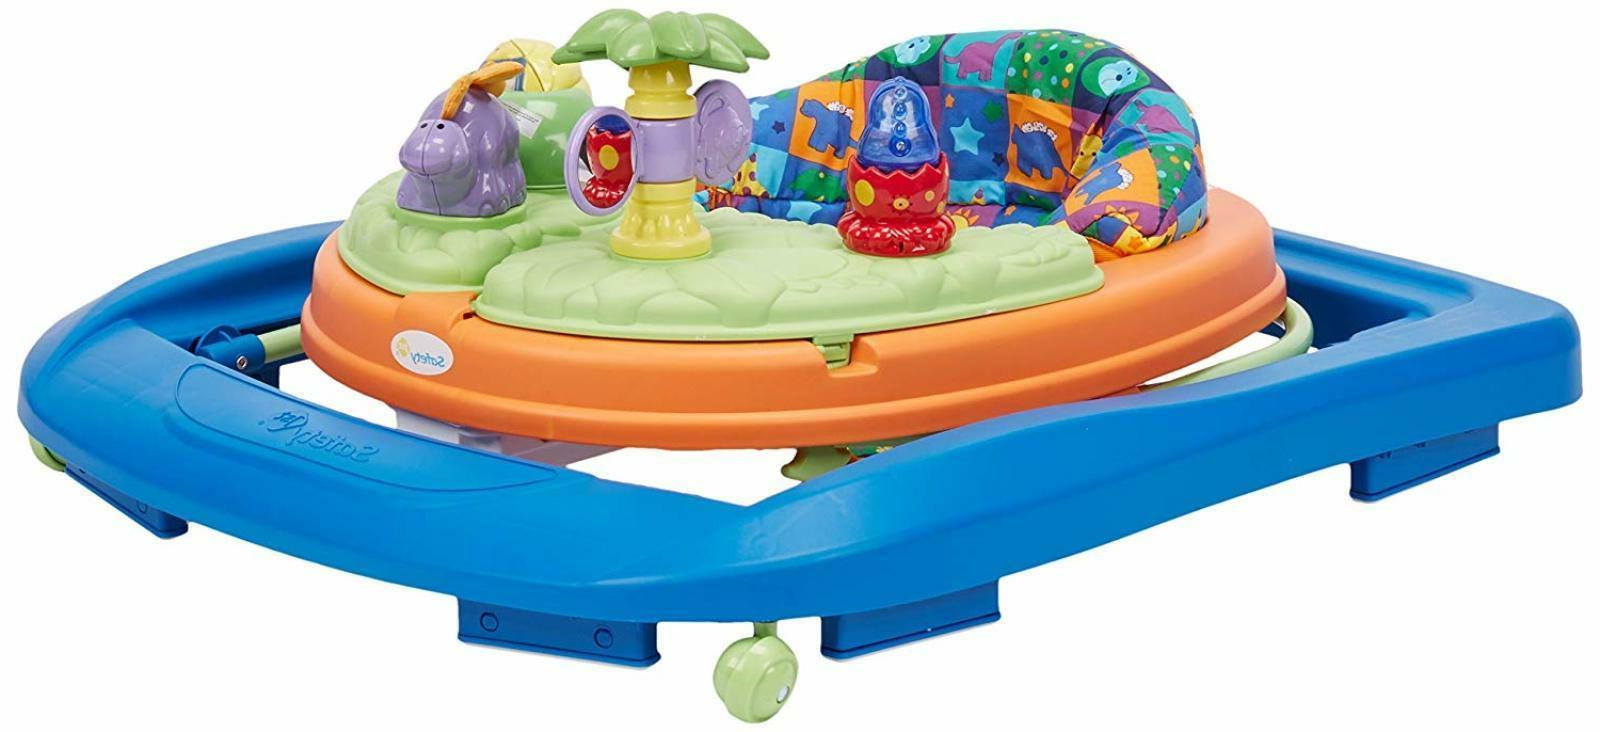 Baby Walkers And Center Toys Toddlers Chair With Parts